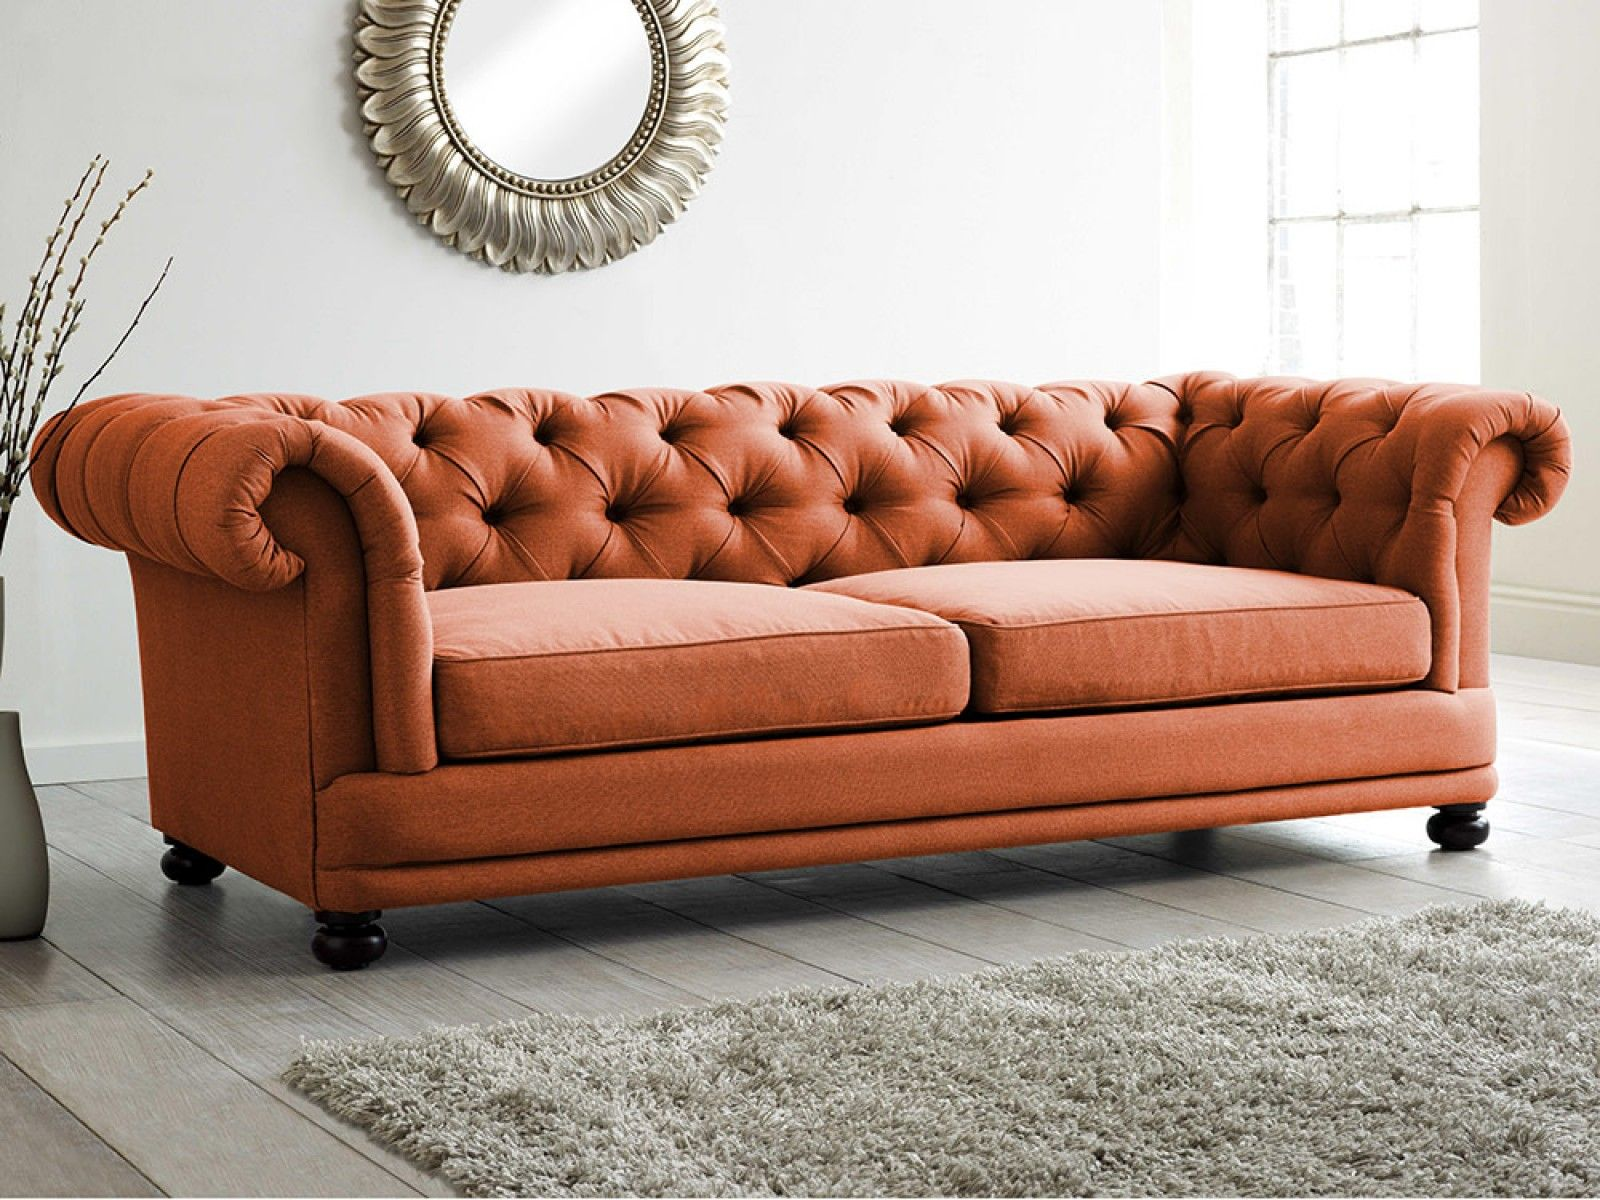 This Vibrant Deep Buttoned Back Sofa Takes A Modern Twist On The Classic Chesterfield Chesterfield Sofa Living Room Upholstered Sofa Chesterfield Living Room